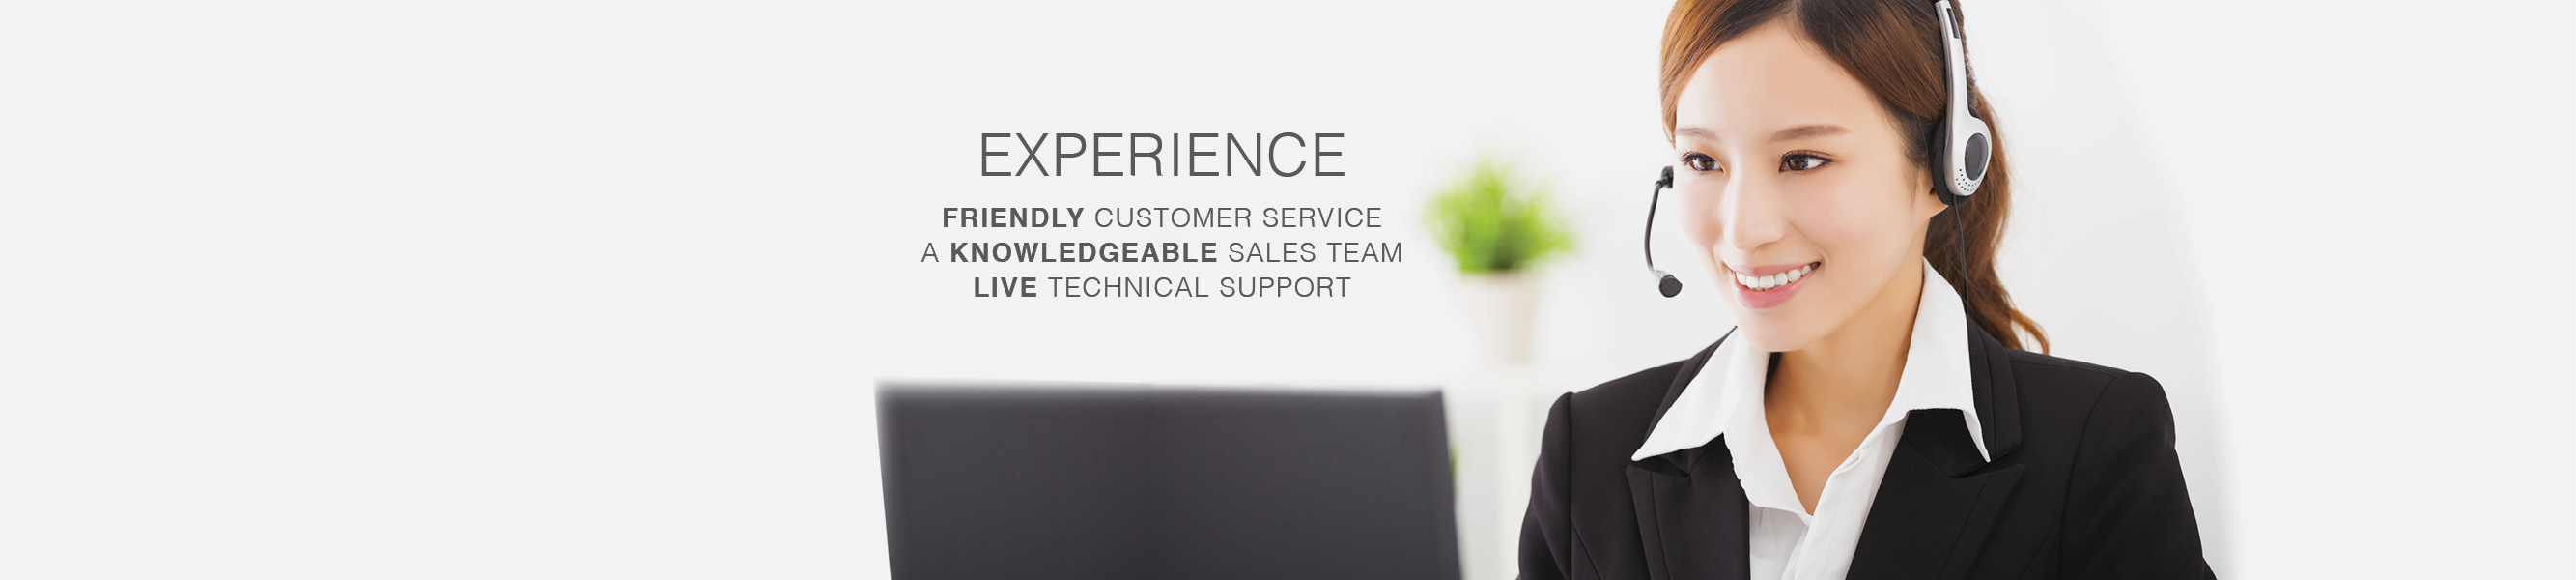 With Nobelus you experience friendly customer service, a knowledgeable sales team and live technical support.